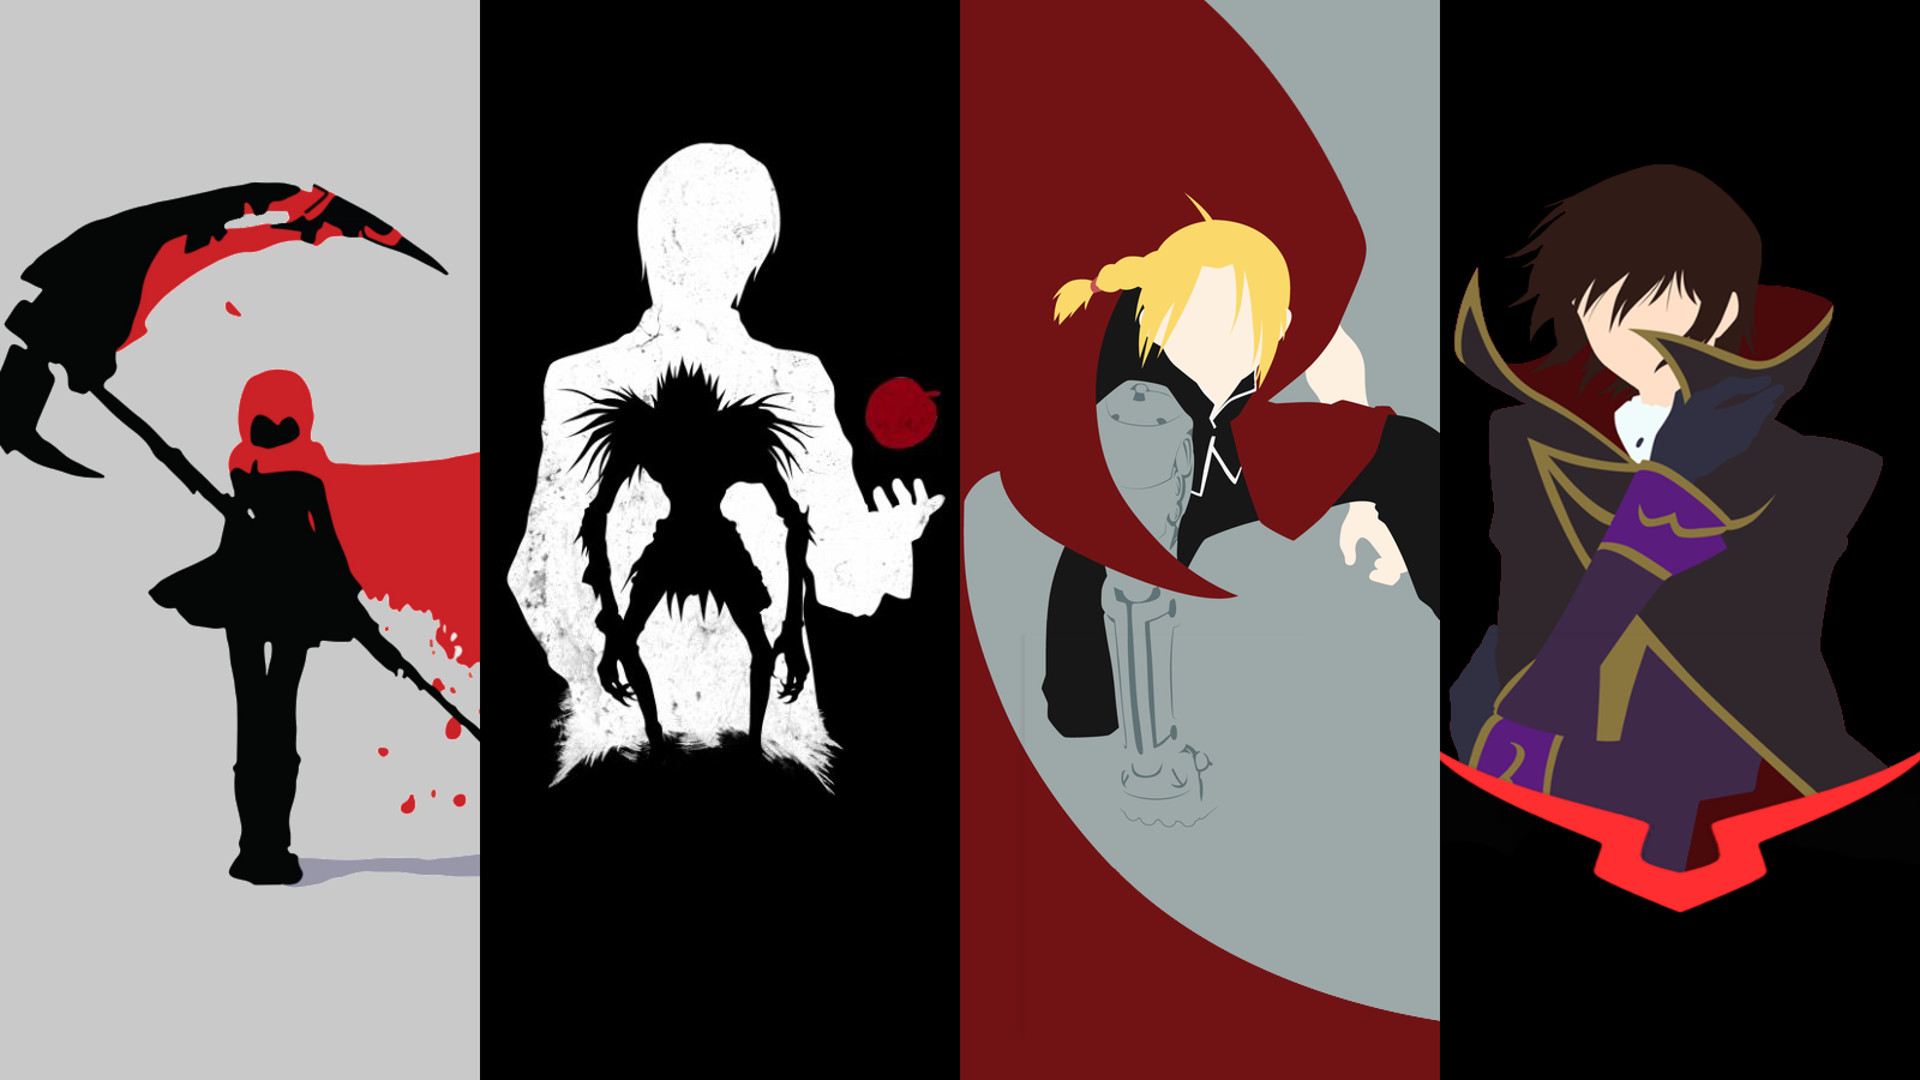 Res: 1920x1080, Deathnote, FMA, Code Geass and RWBY wallpaper ()